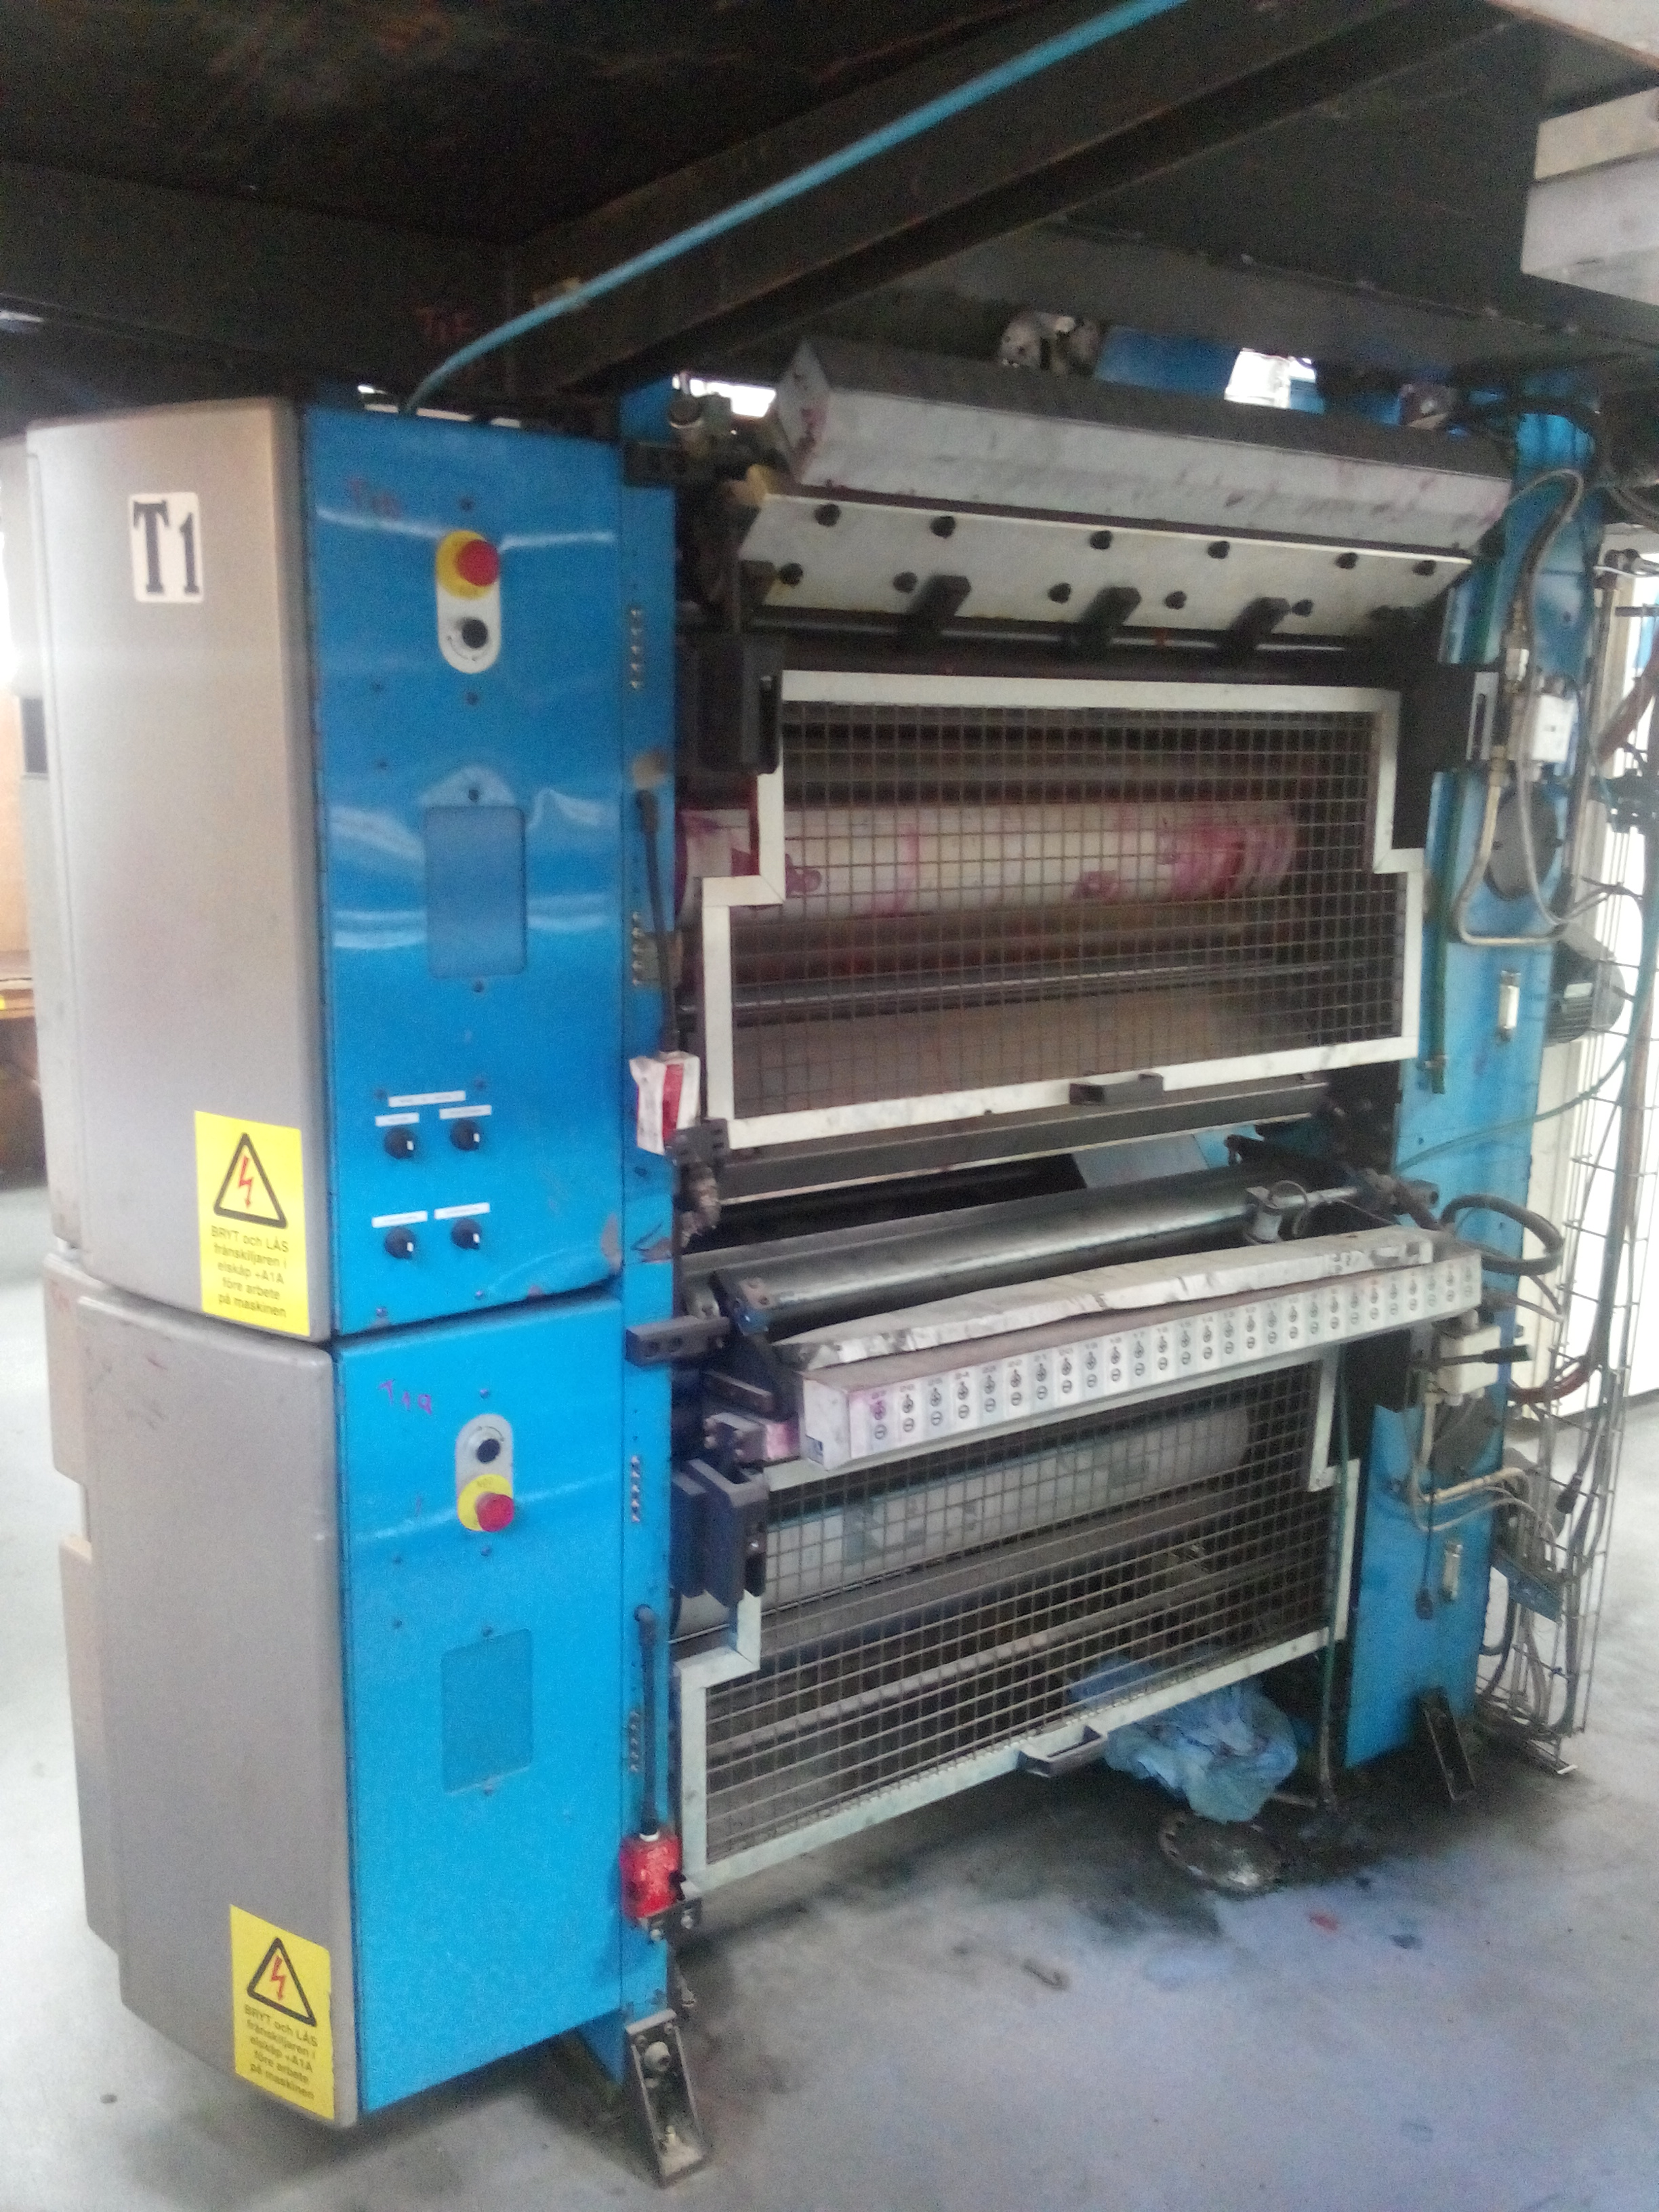 Kammann Ohz web 2000 1 tower with 4 printing units offset presses web fed